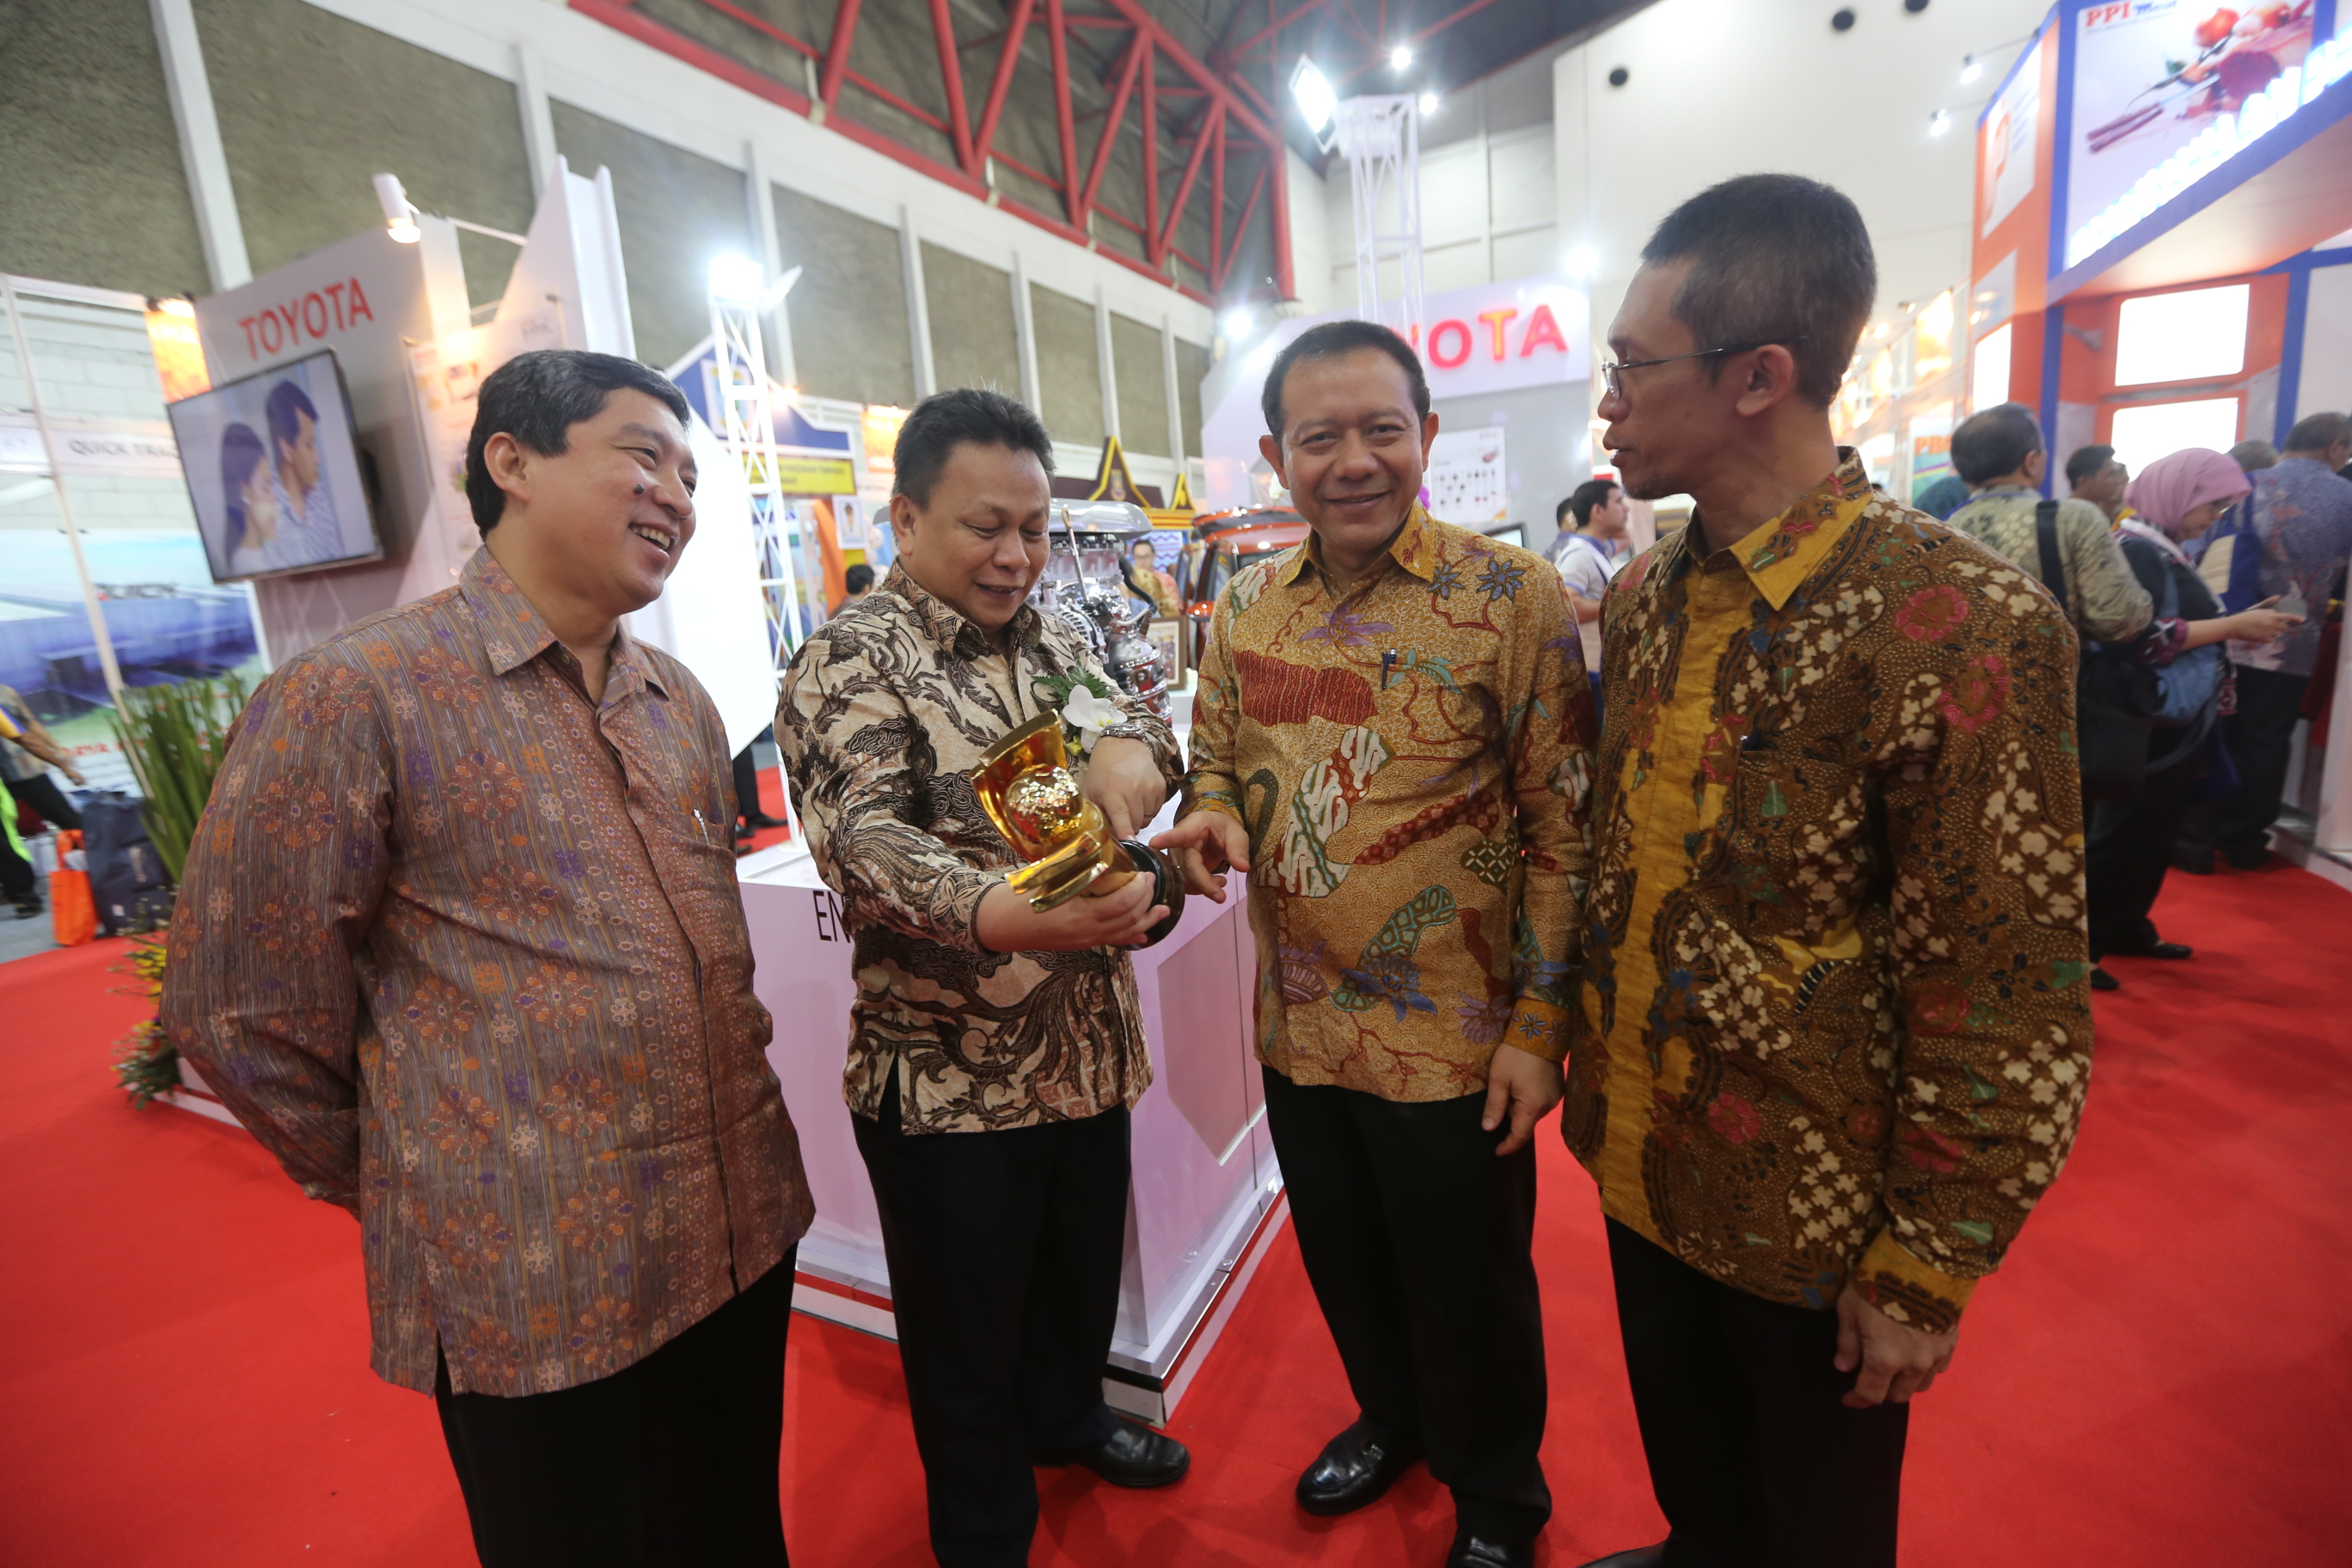 Toyota Indonesia Continue to receive Primaniyarta Award